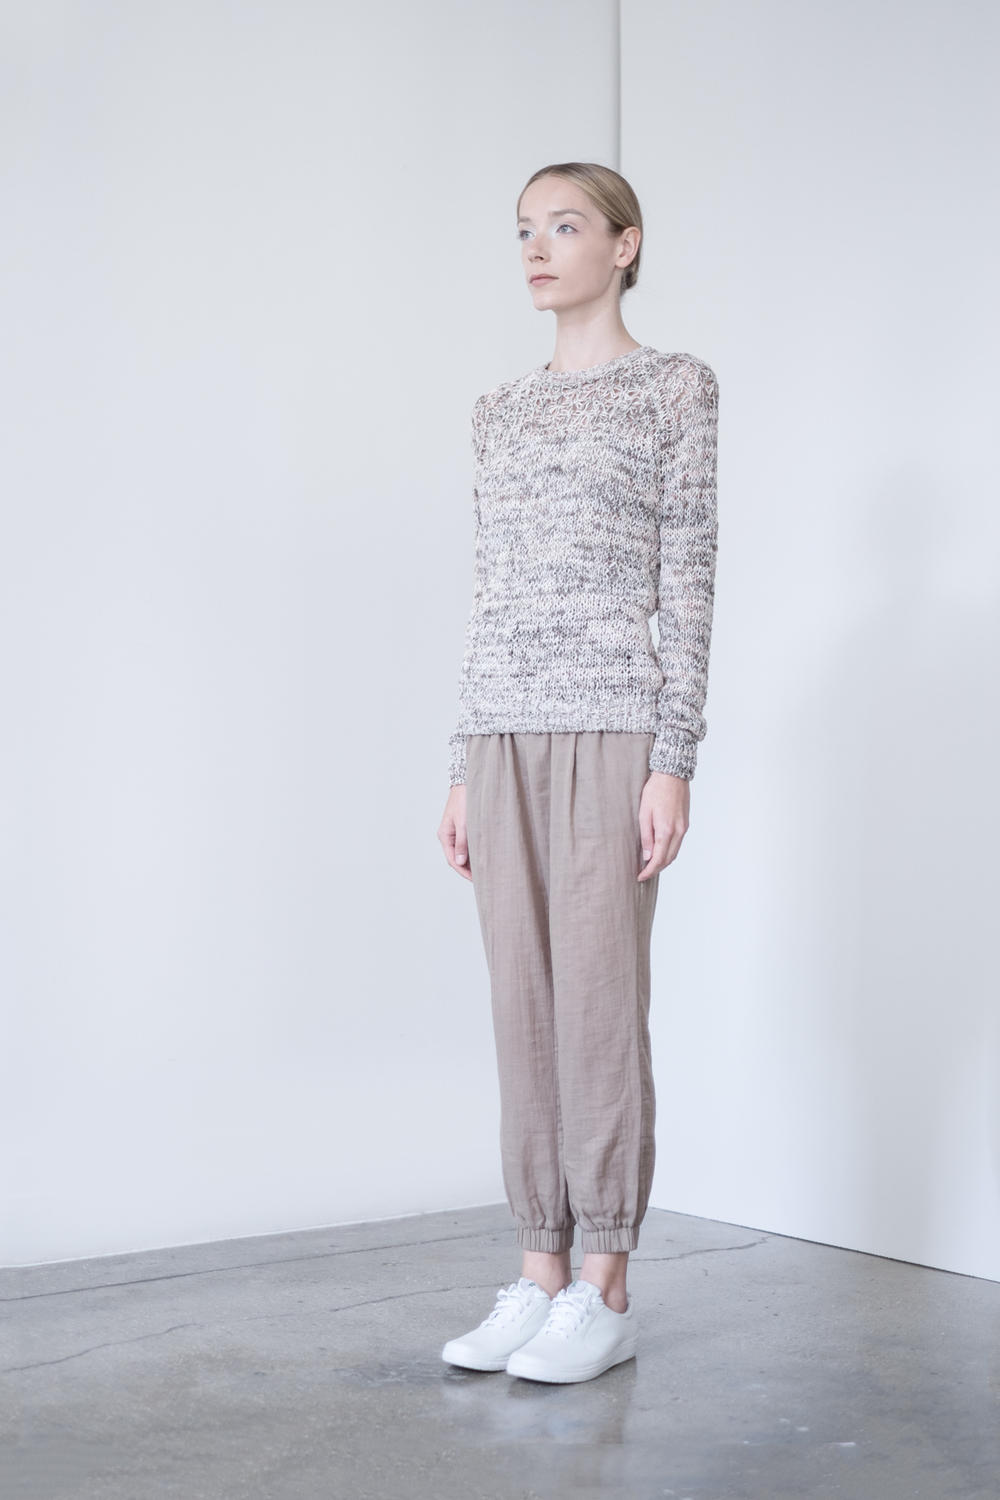 LOOK 16   TOP:  2300 / Marled Timber -  Briley open mix lace stitch pullover, in printed cotton,nylon.   BOTTOM:  2290 / Timber - Jogger pants in 100% Cotton woven dbl. layer gauze.